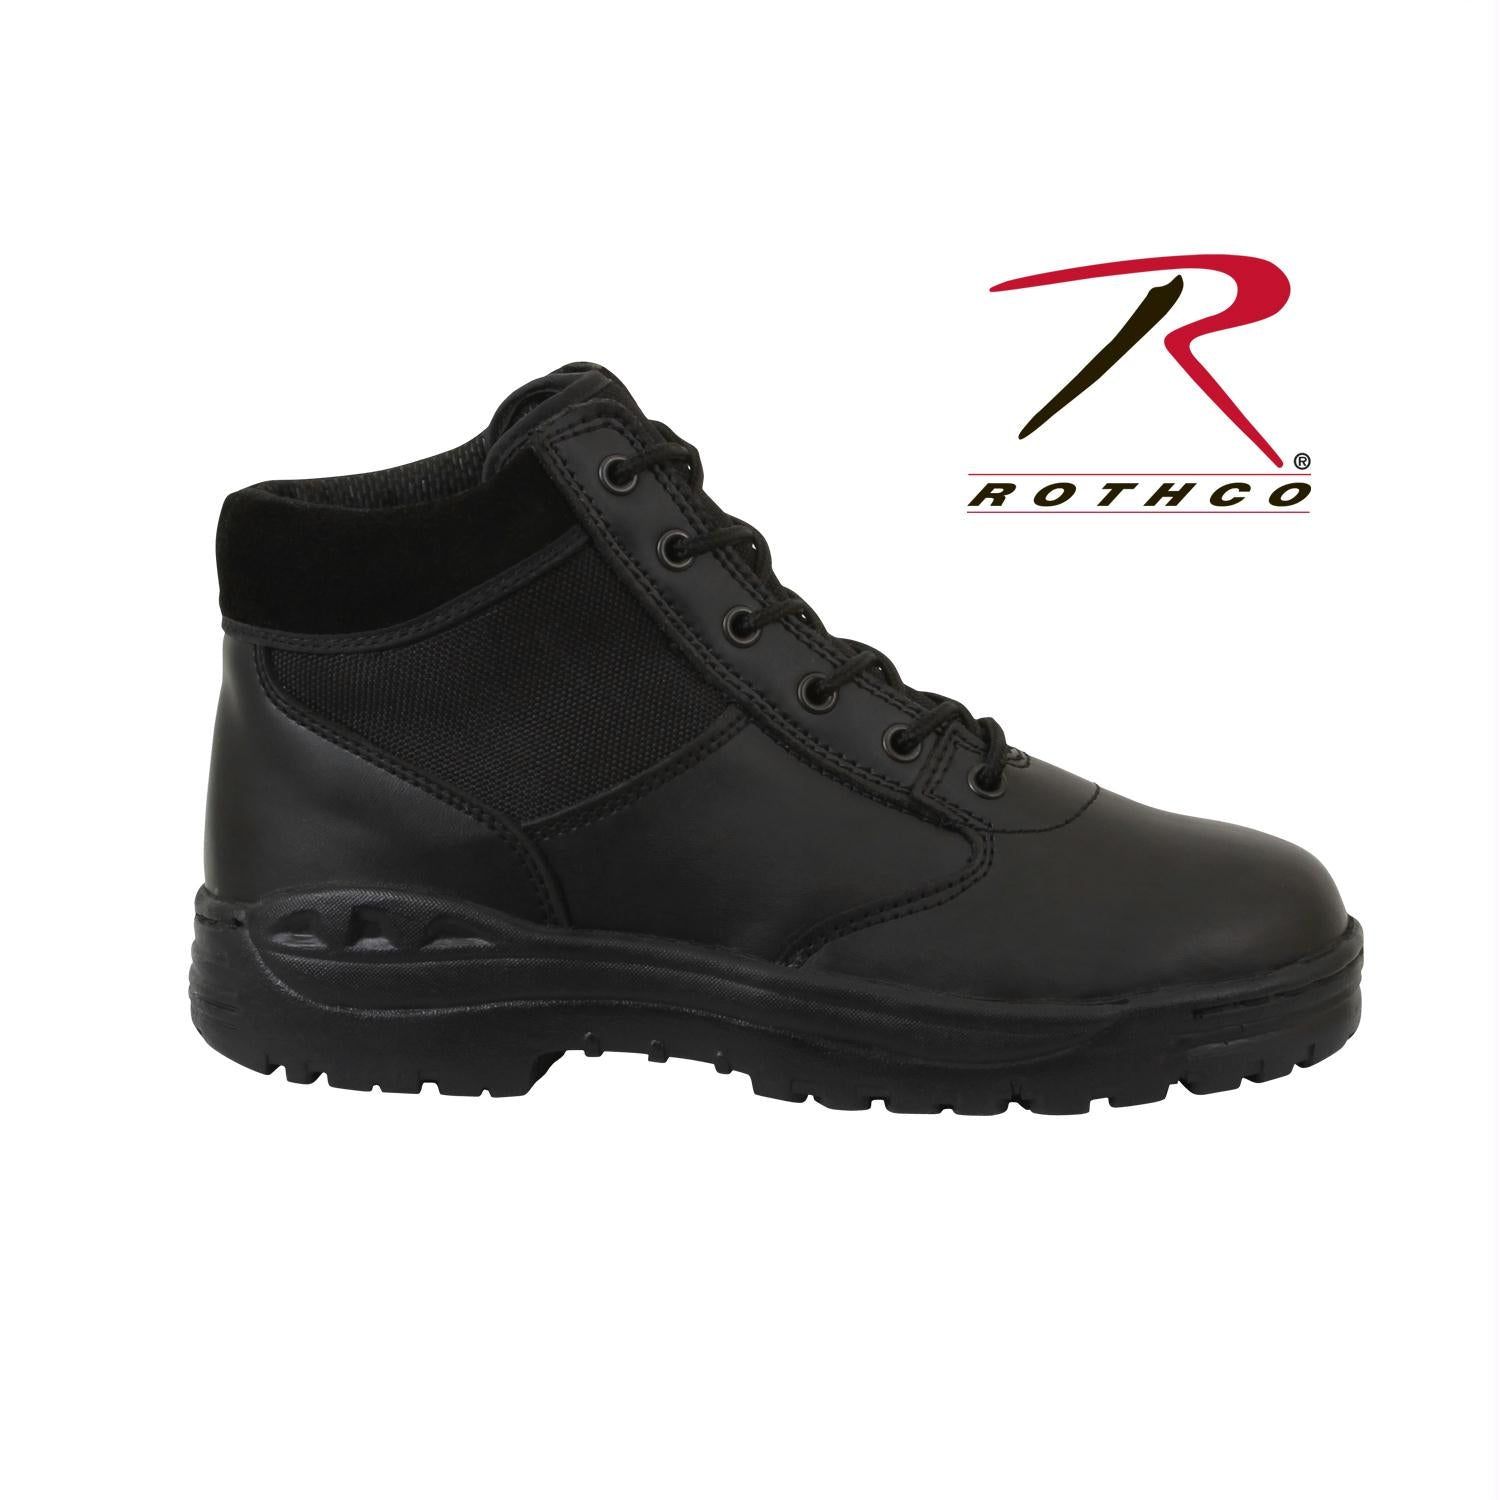 Rothco Forced Entry Security Boot / 6'' - 8.5